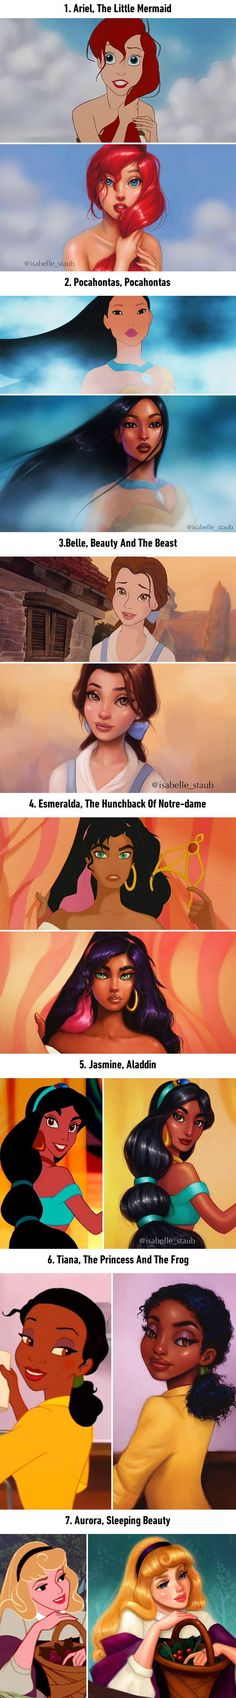 Illustrator Repaints Disney Princesses In Gorgeous New Digital Series